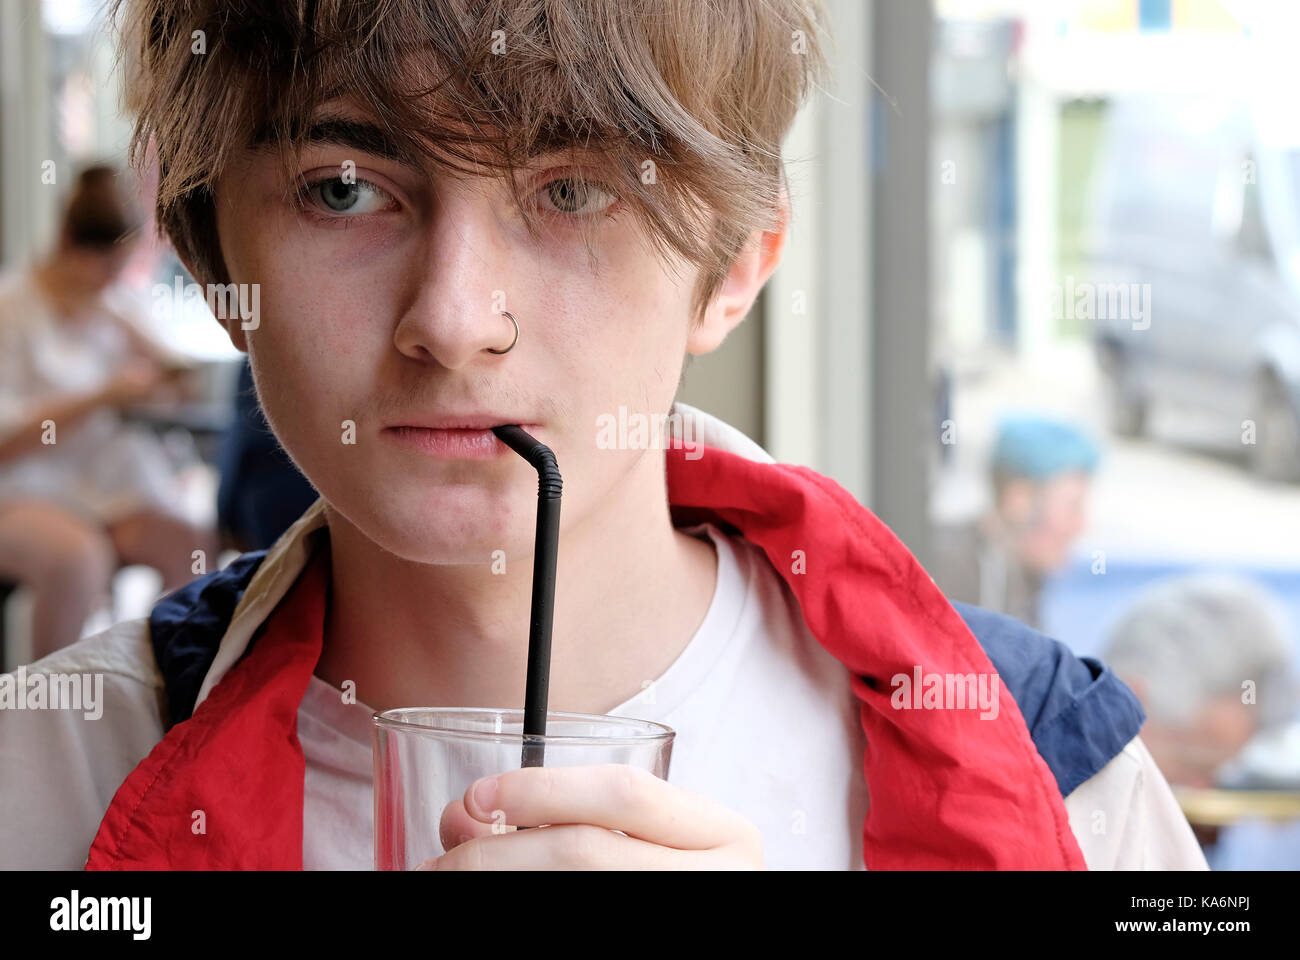 teenager drinking soft drink from straw in cafe interior - Stock Image